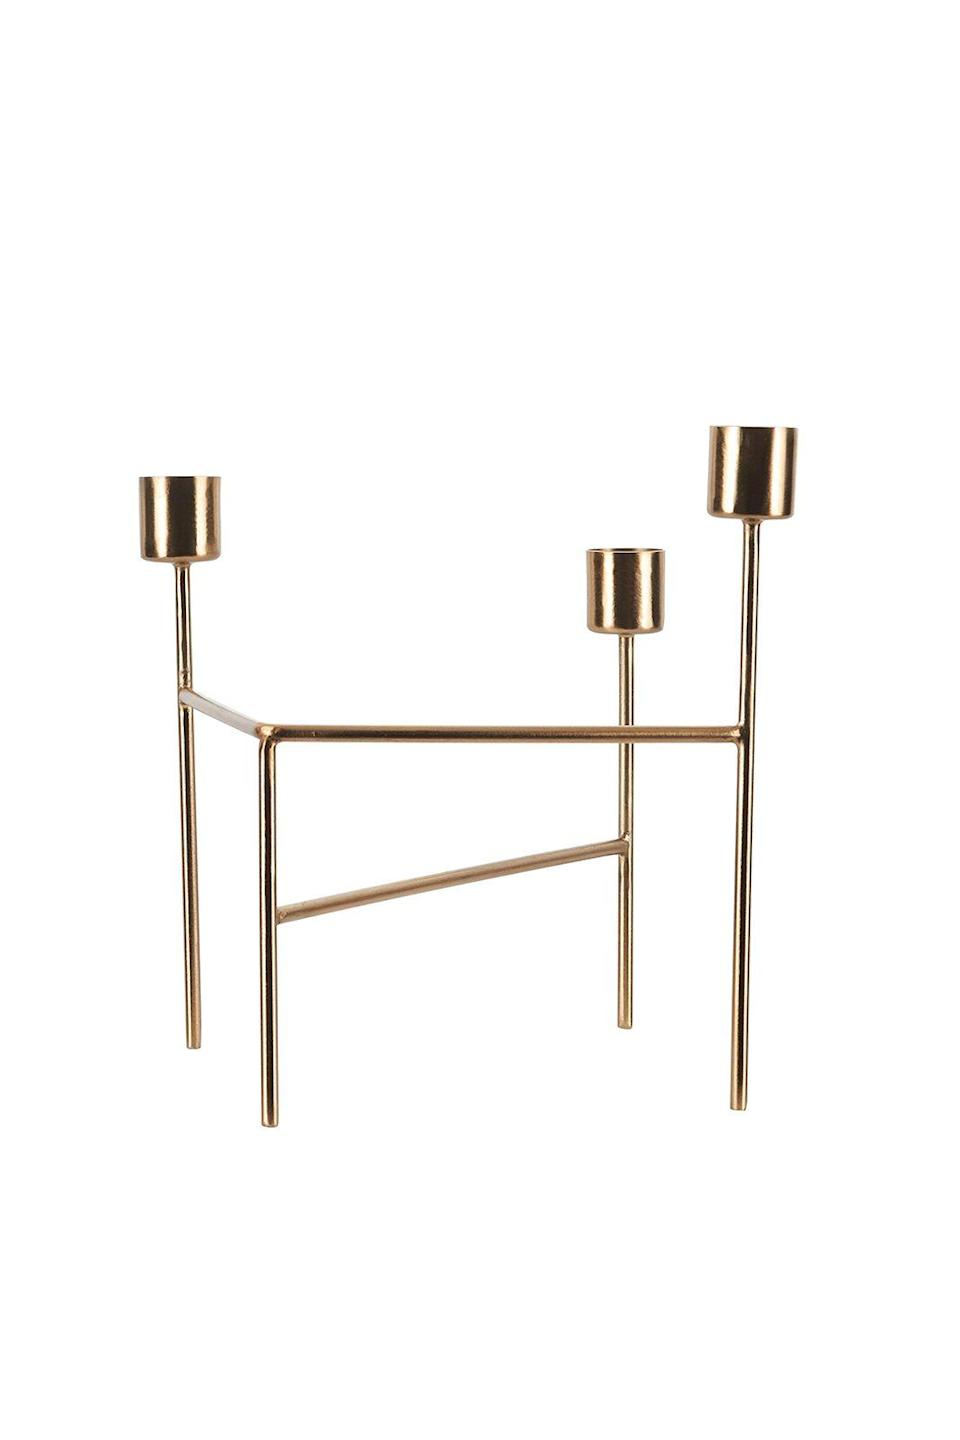 """<p><strong>Flaming hot</strong></p><p>Light up your dinner table with this brushed brass candle holder and bestow a bit of magic on your next gathering. A little bit of candlelight never hurt any slightly less than perfect cooking, after all.</p><p>£16, <a href=""""https://www.amara.com/products/candle-holder-brushed-brass"""" rel=""""nofollow noopener"""" target=""""_blank"""" data-ylk=""""slk:amara.com"""" class=""""link rapid-noclick-resp"""">amara.com</a></p>"""